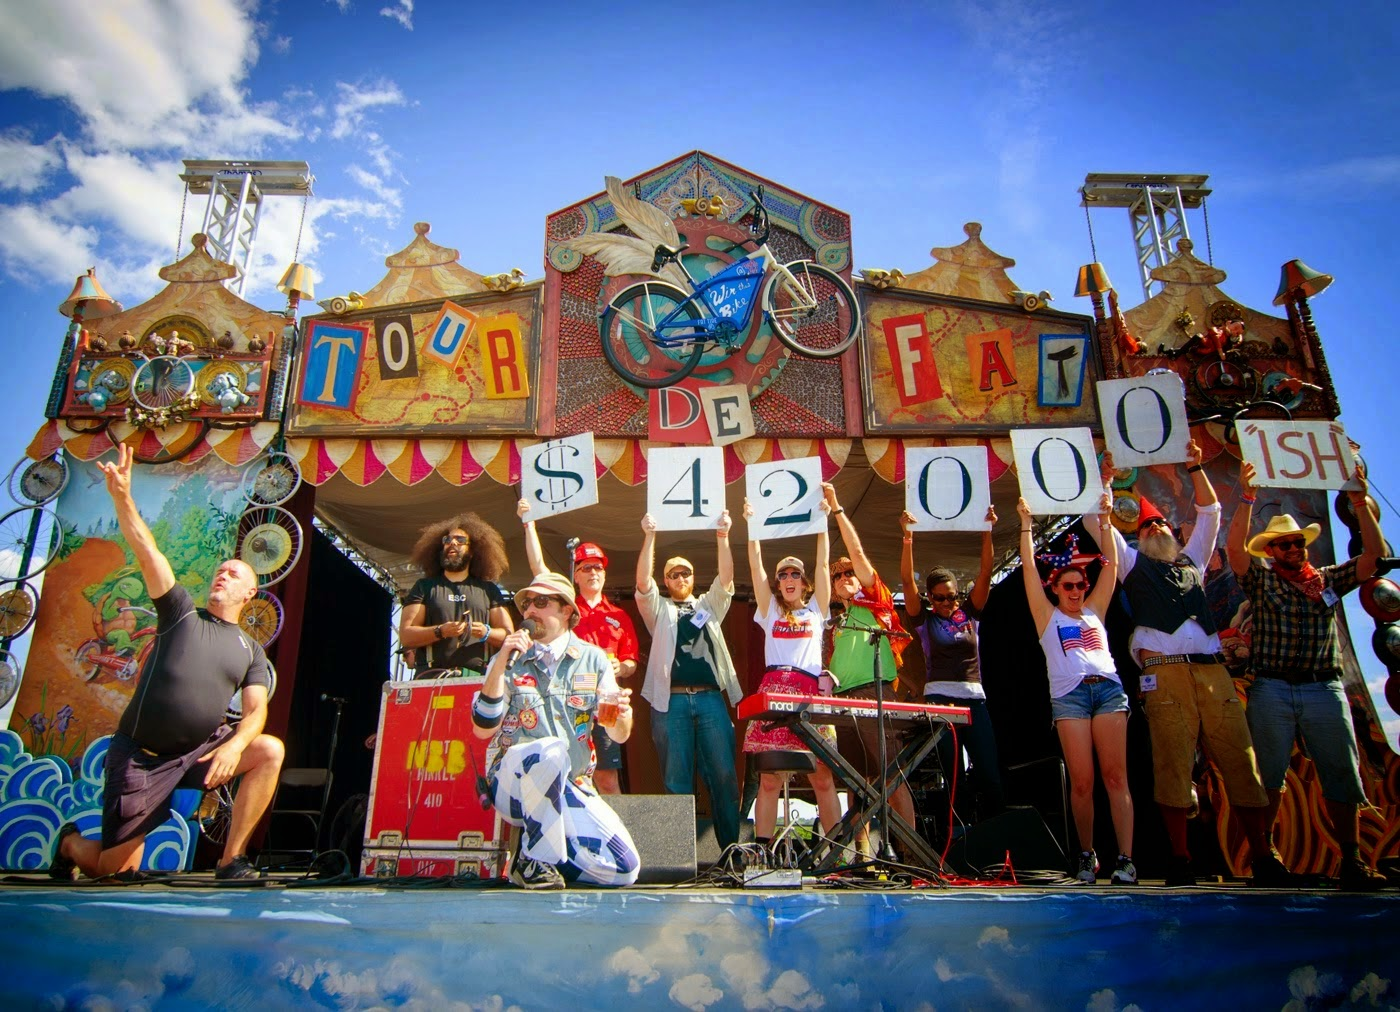 Group presents money raised by the New Belgium Tour de Fat bike race on stage at the Yards DC